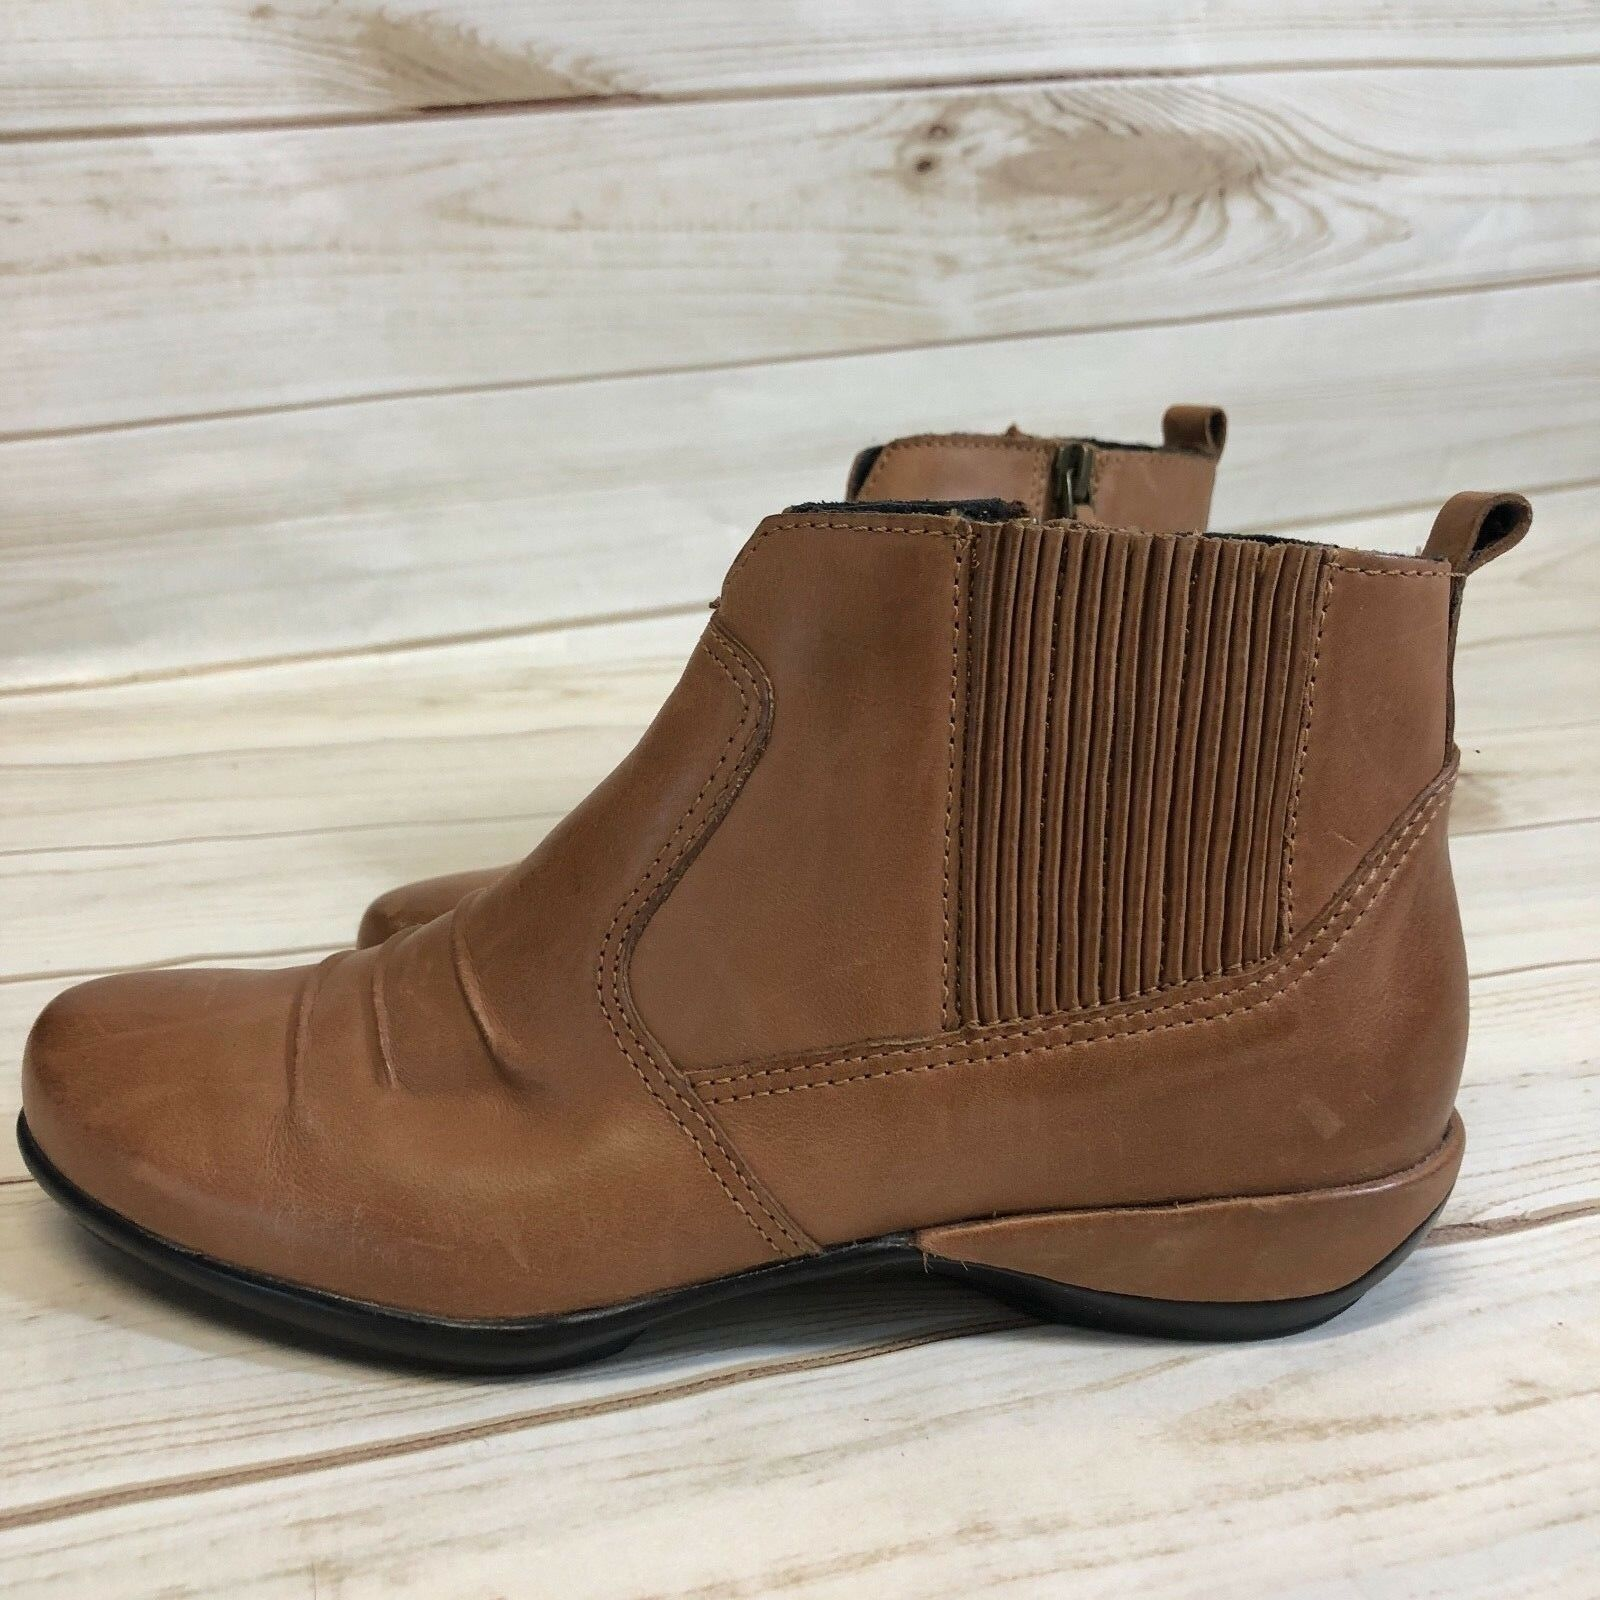 Aetrex Kailey Kailey Kailey Cognac Ankle Stiefel damen's 5B EUC Leather Free Shipping 9a061b